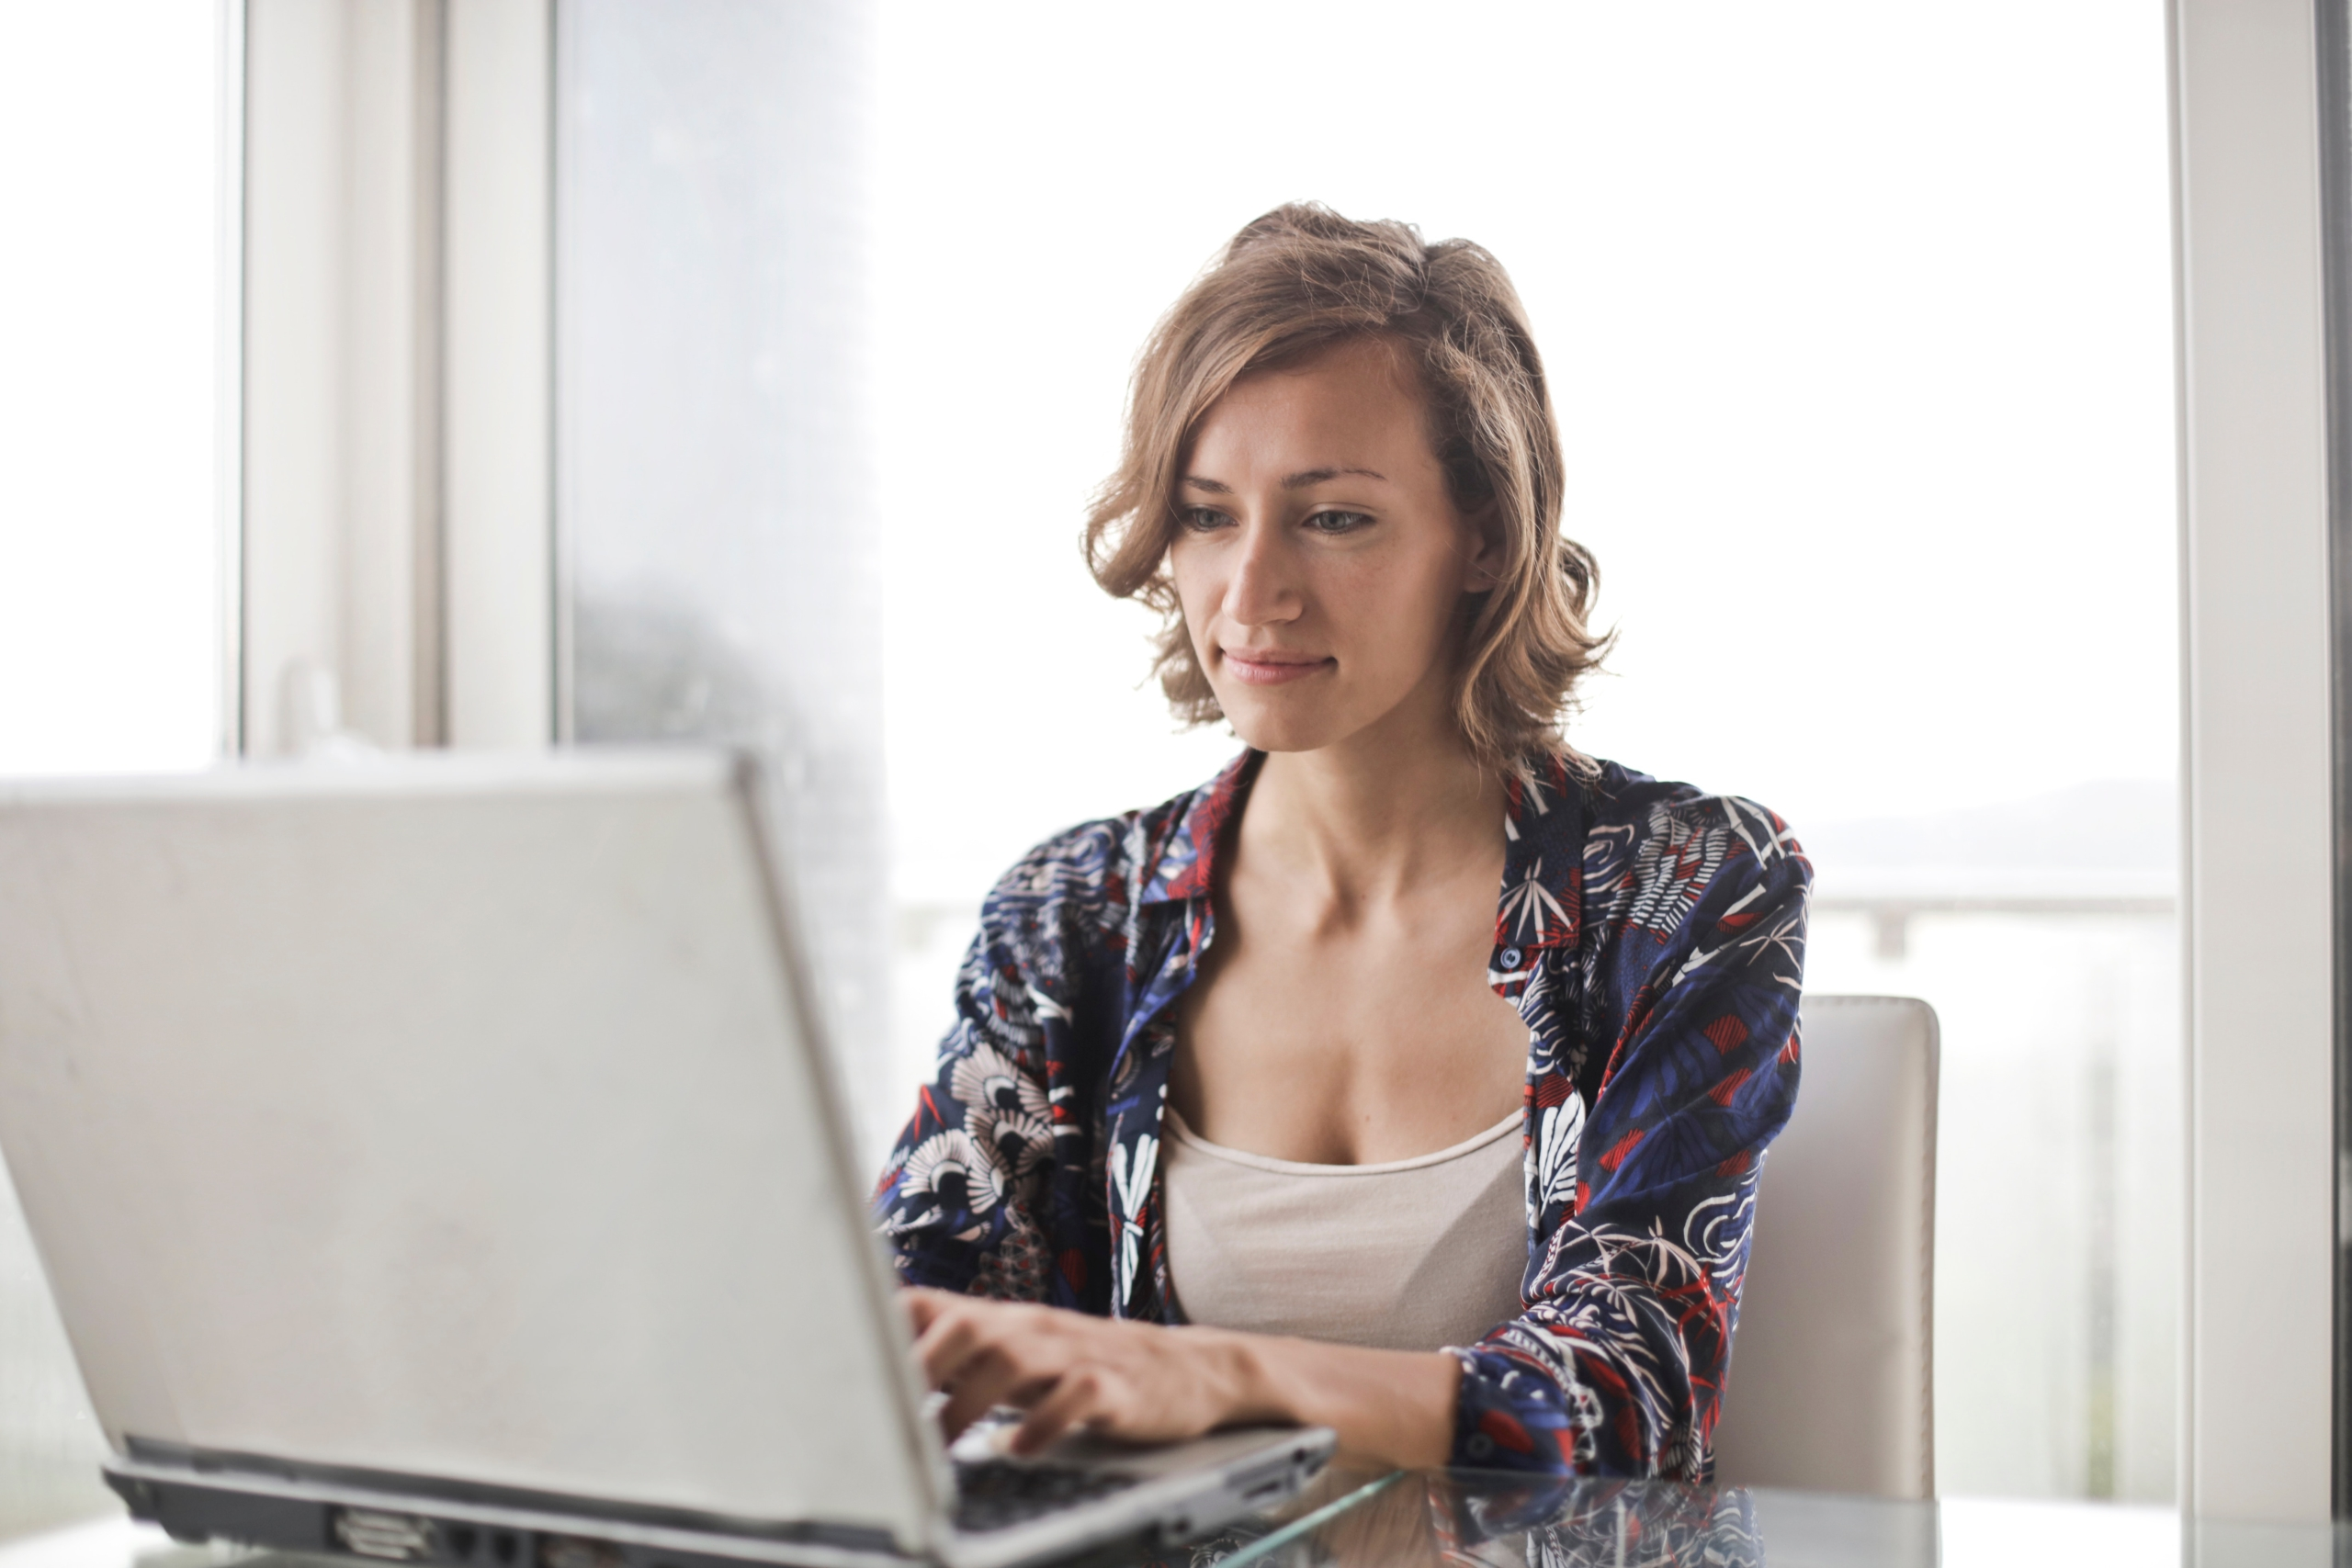 woman-in-blue-floral-top-sitting-while-using-laptop